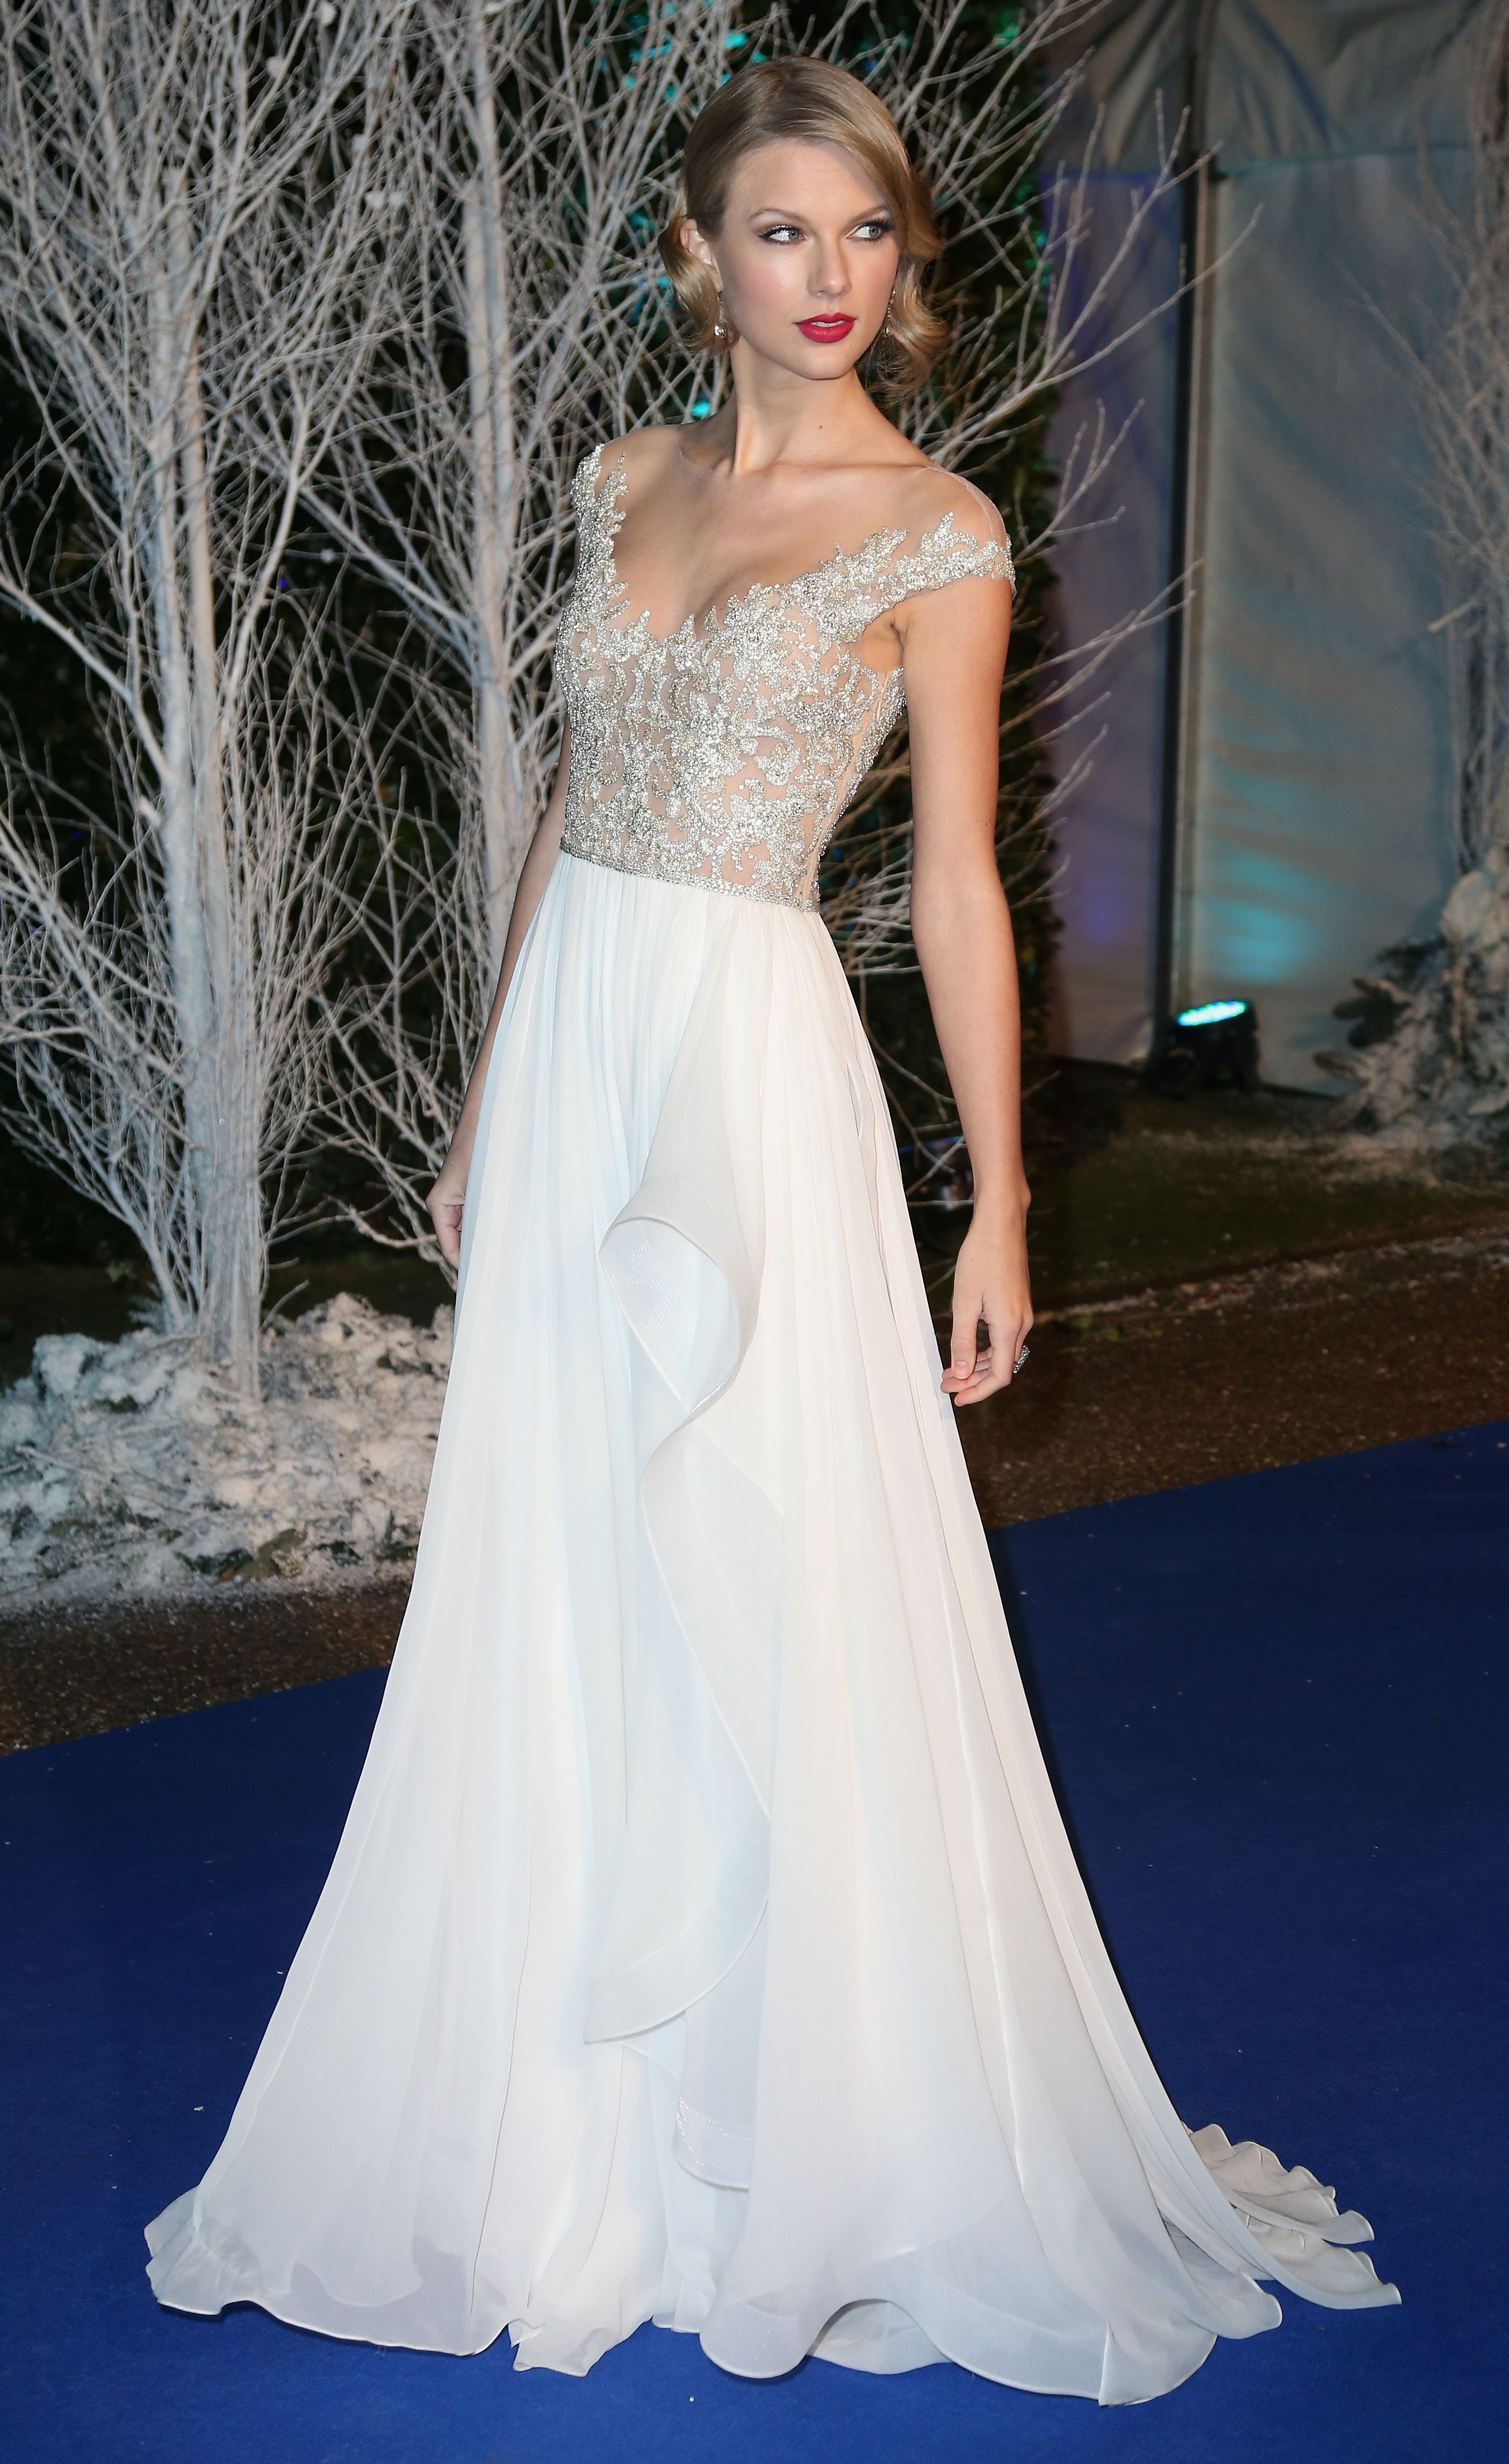 Taylor Swift in Reem Acra from Spring 2014 at the Winter Whites Gala at Kensington Palace